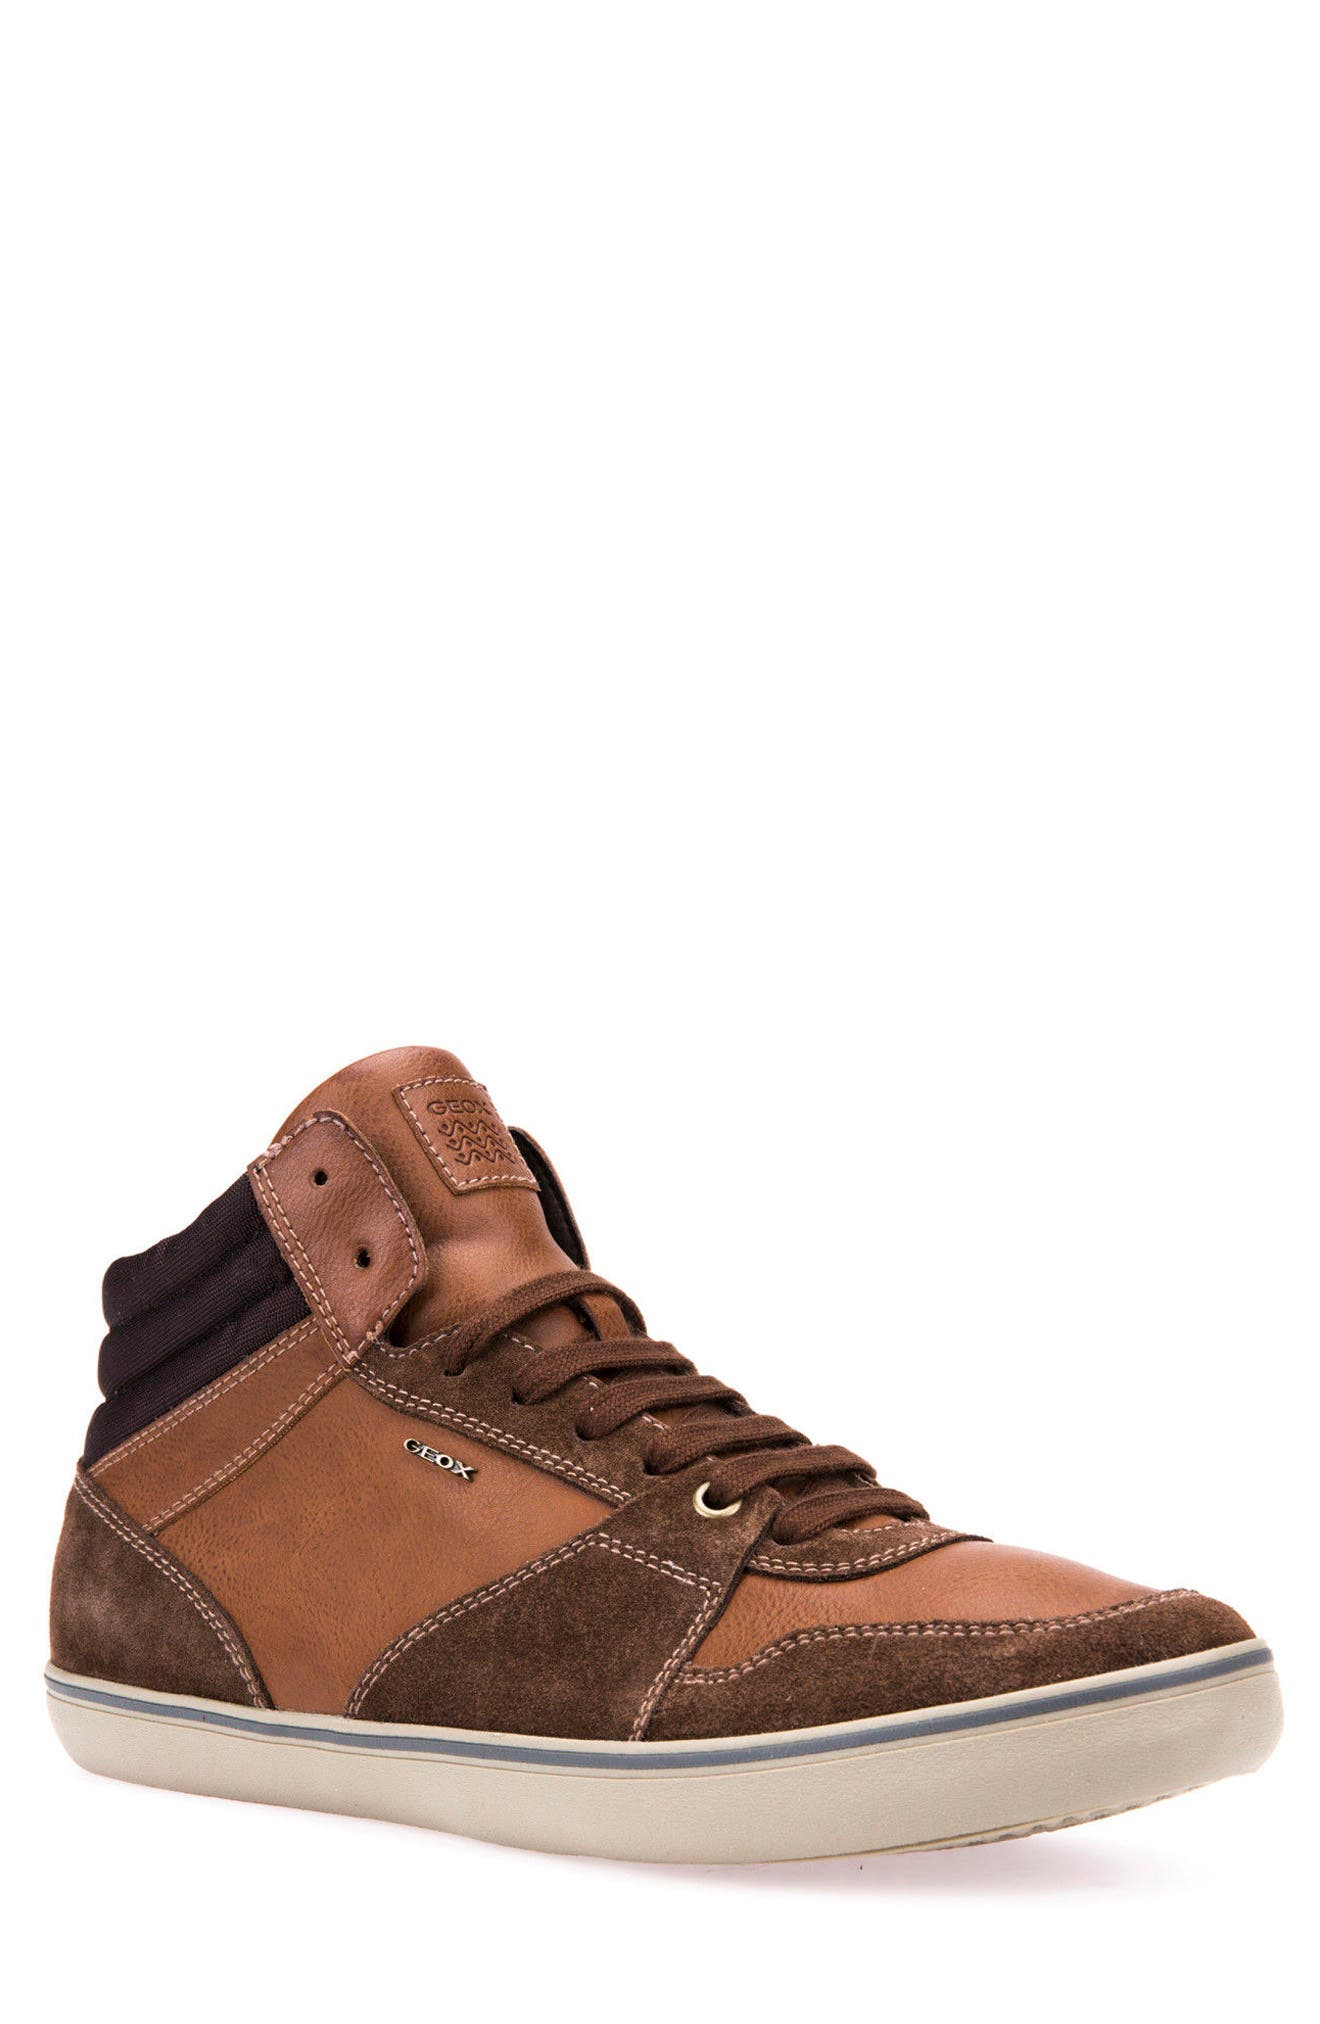 Box 30 High Top Sneaker,                             Main thumbnail 1, color,                             Ebony/ Brown Cotto